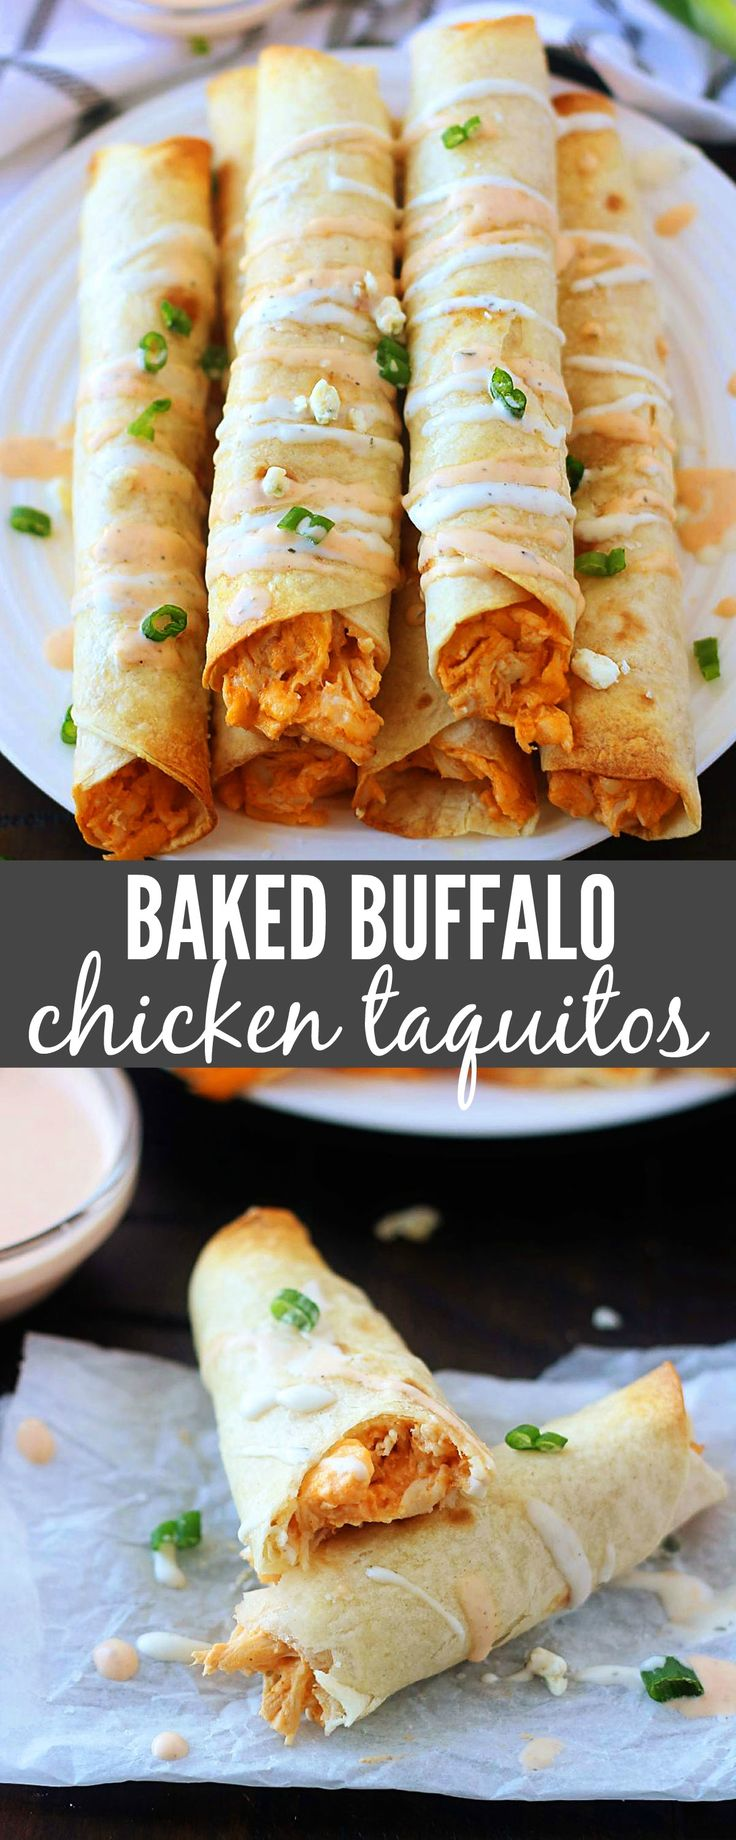 These Baked Buffalo Chicken Taquitos are a family favorite. Filled with shredded chicken, cream cheese, ranch dressing, wing sauce and sharp cheese. . . these are crazy good and so simple to make.